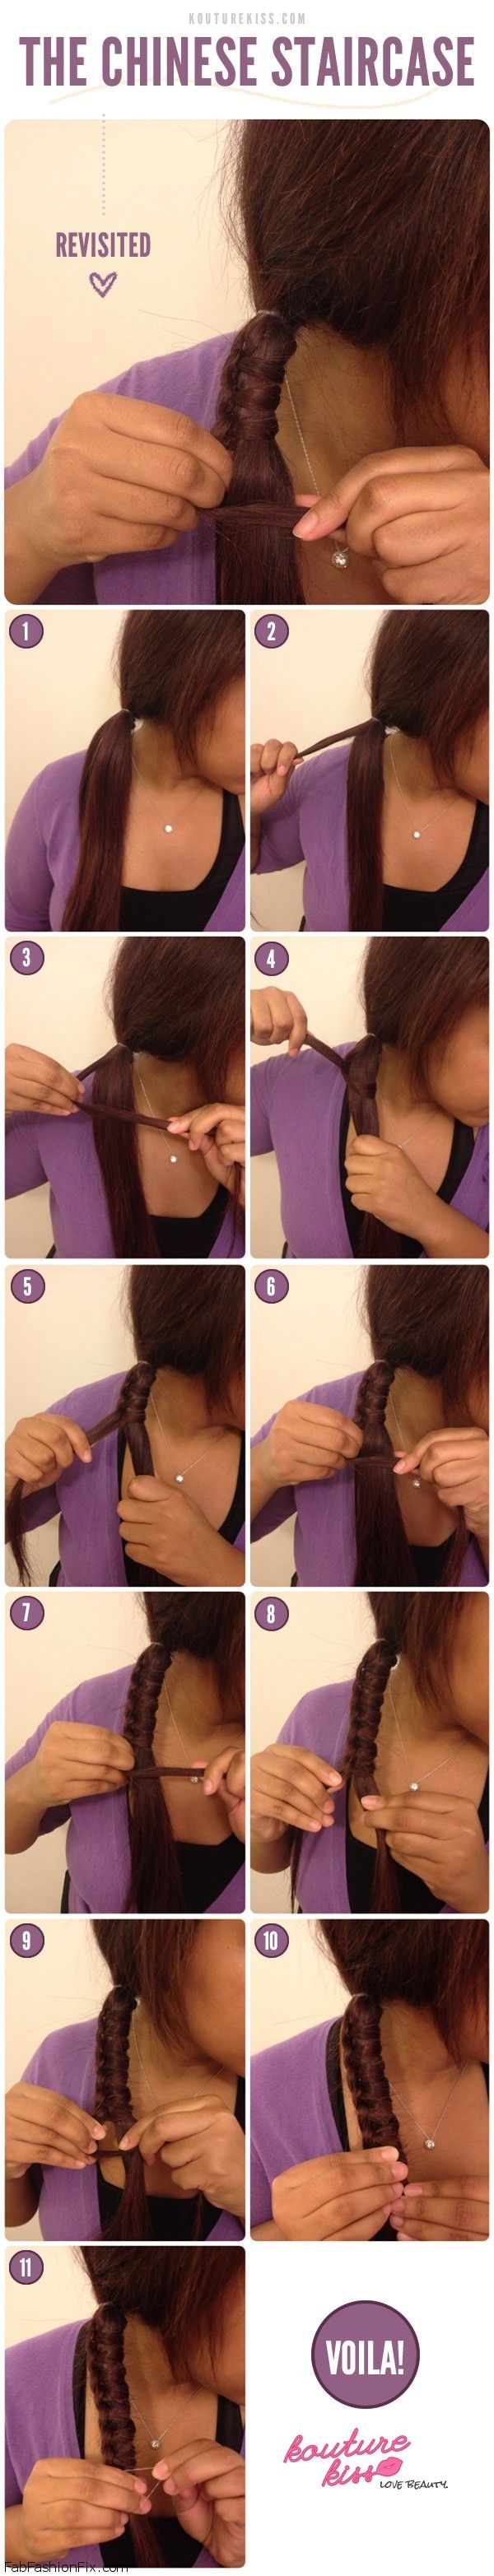 FabFashionFix - Fabulous Fashion Fix | Beauty: Chinese Staircase Braid Hairstyle Tutorial